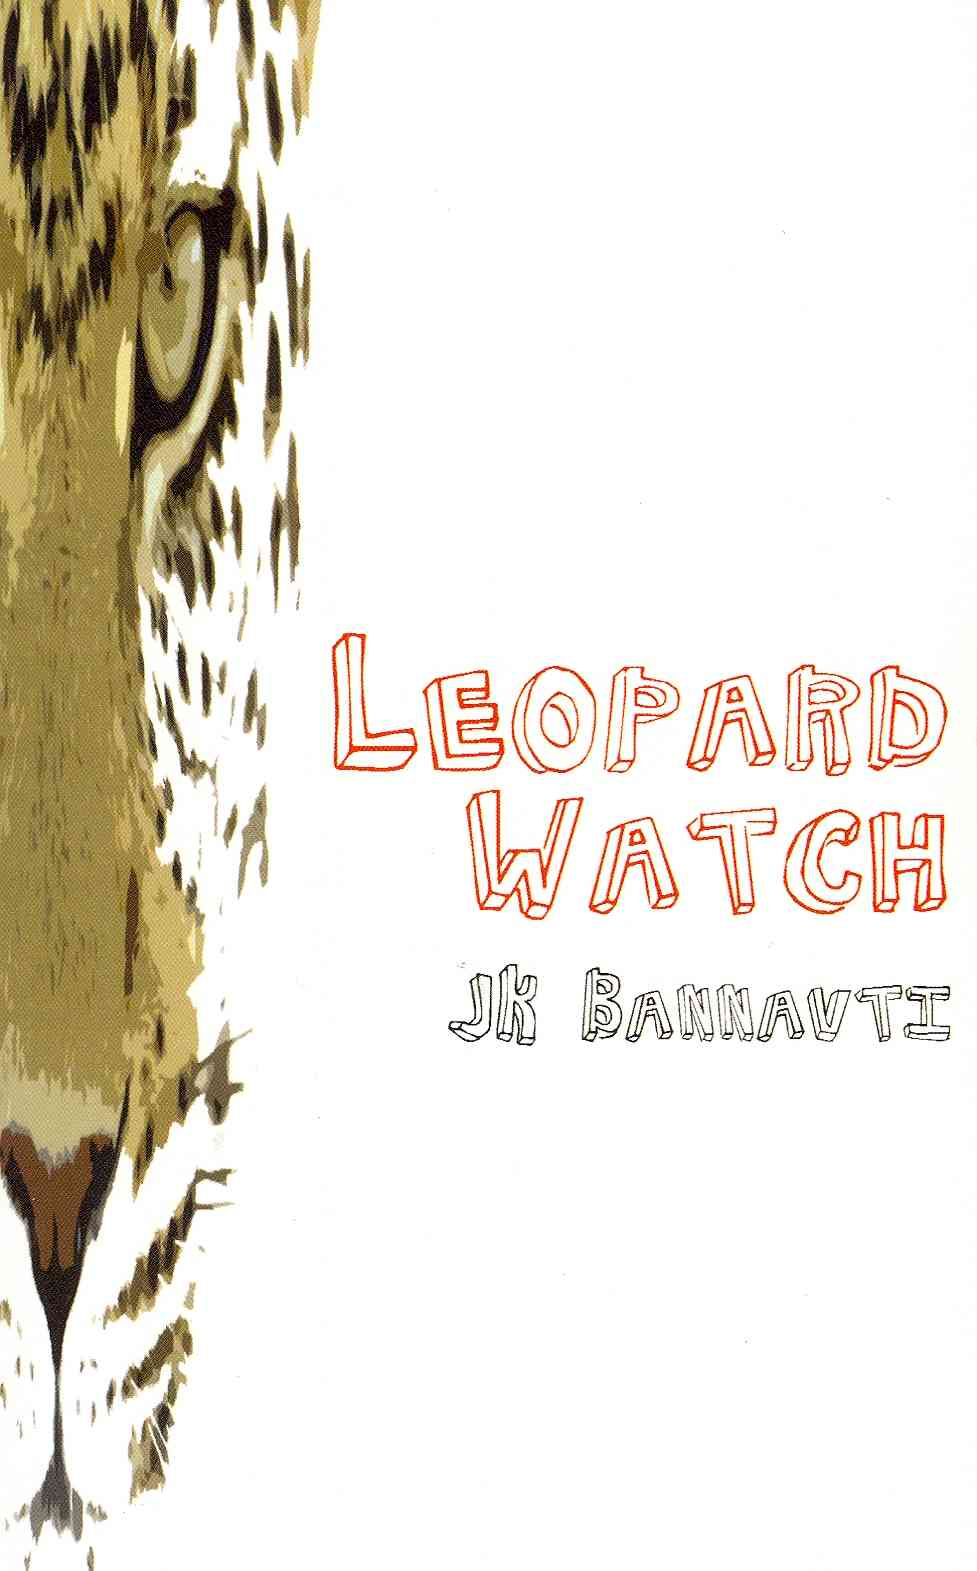 Leopard Watch By Bannavti, Jk